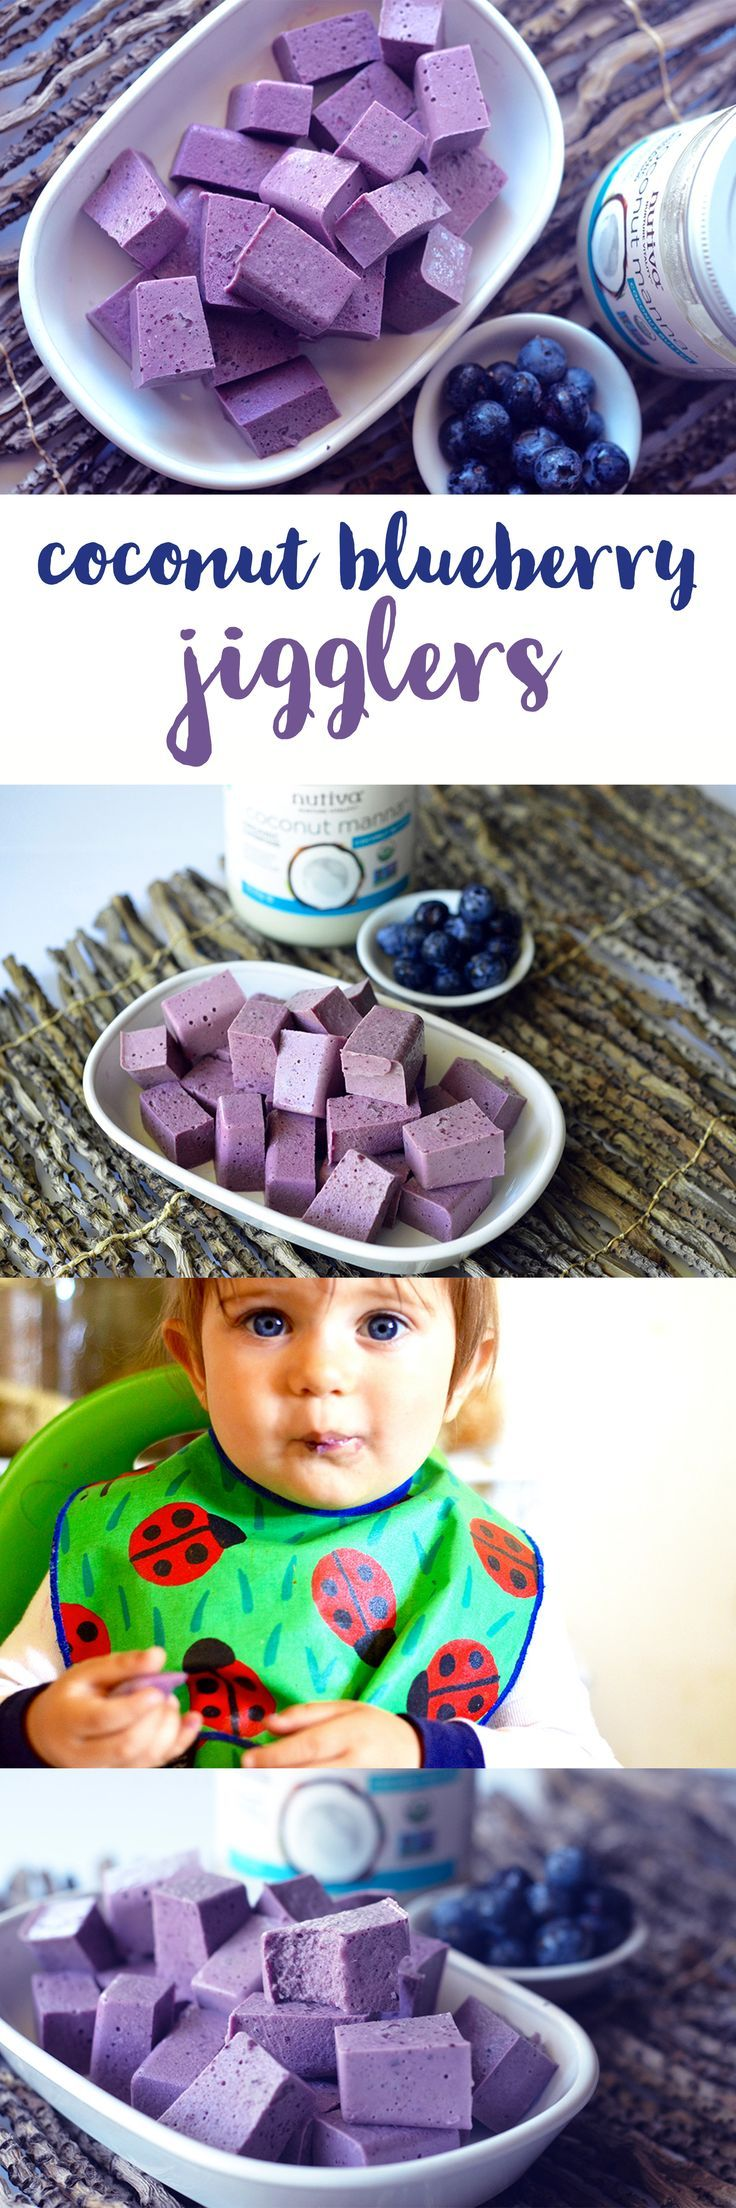 Don't forget some sweet treats for the kiddos this season! These blueberry coconut jigglers are sure to do the trick.